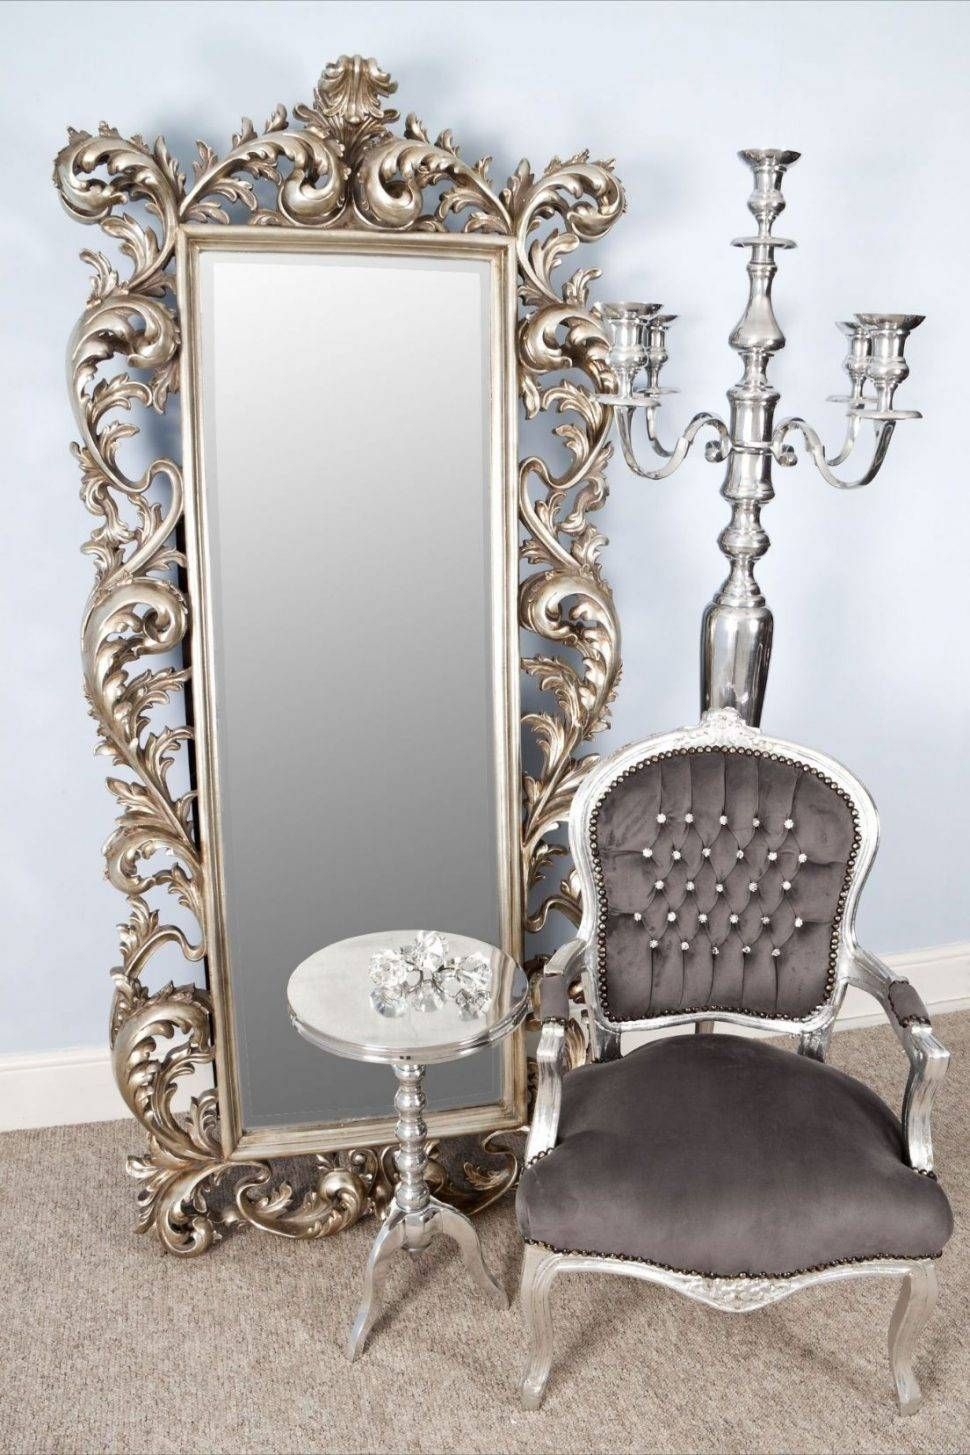 Bedroom Furniture : Free Standing Mirror Wood Framed Mirrors regarding Small Free Standing Mirrors (Image 5 of 25)